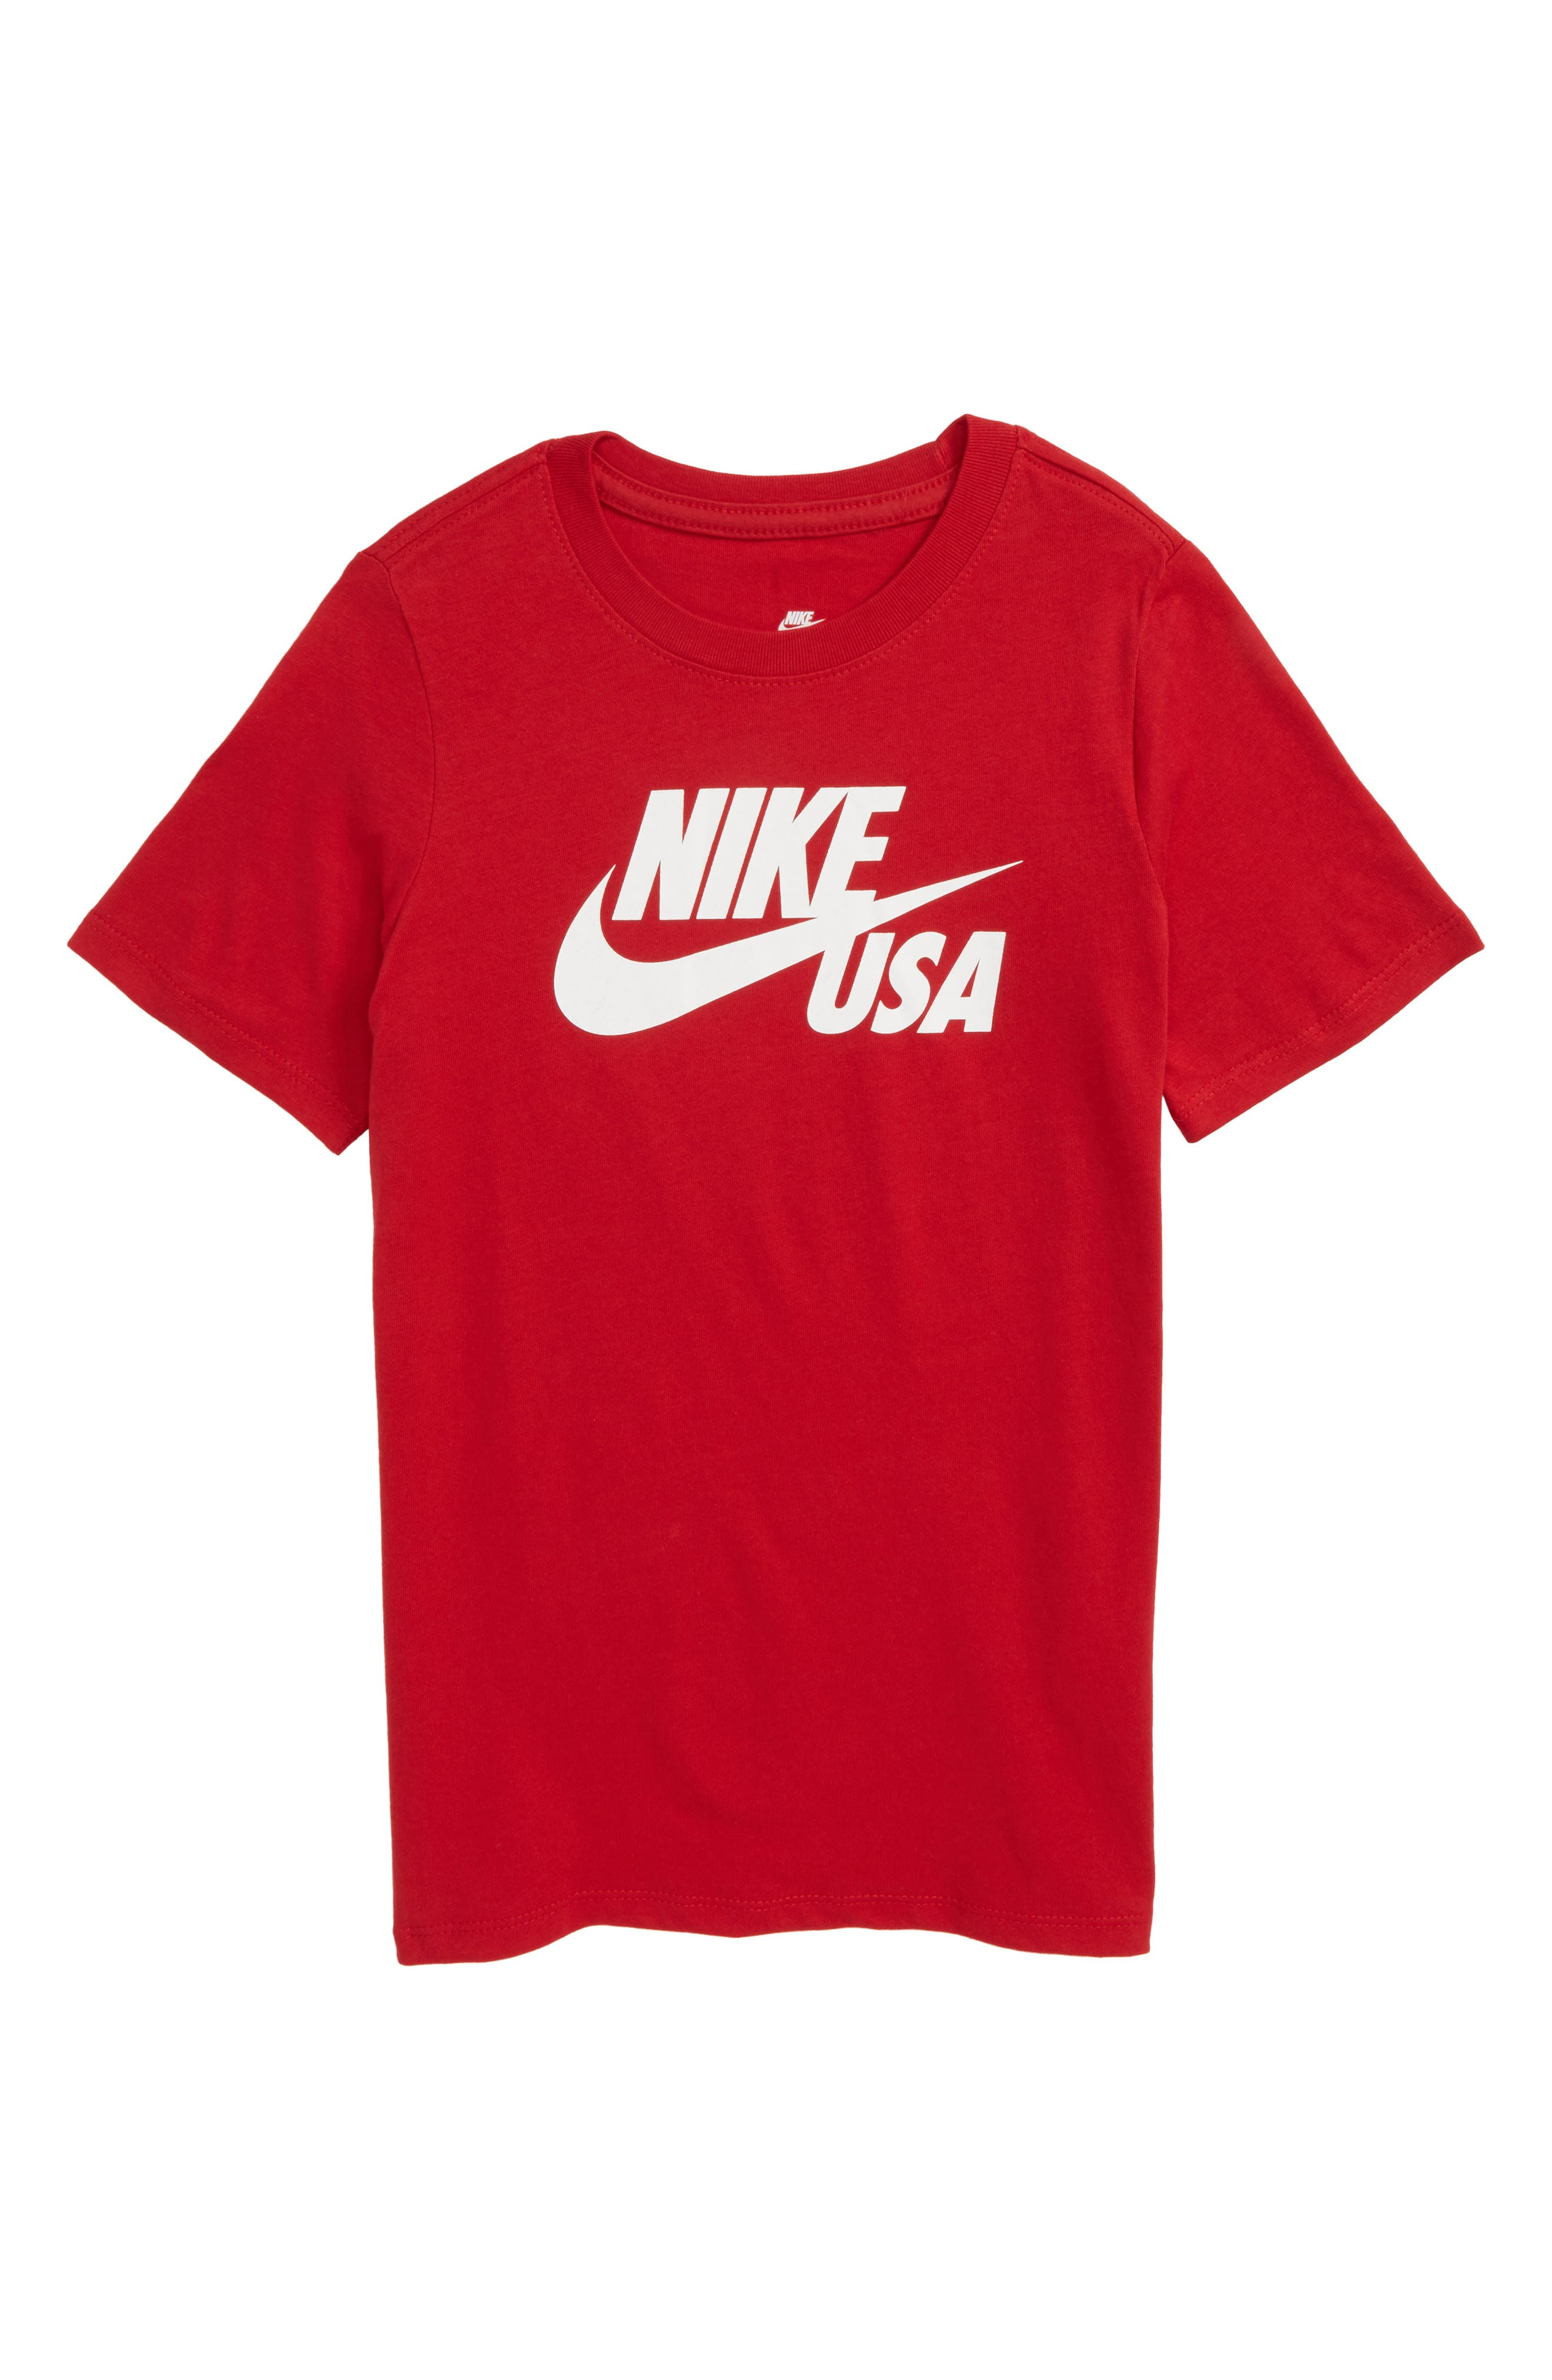 Sportswear USA Country Graphic T-Shirt,                         Main,                         color, Gym Red